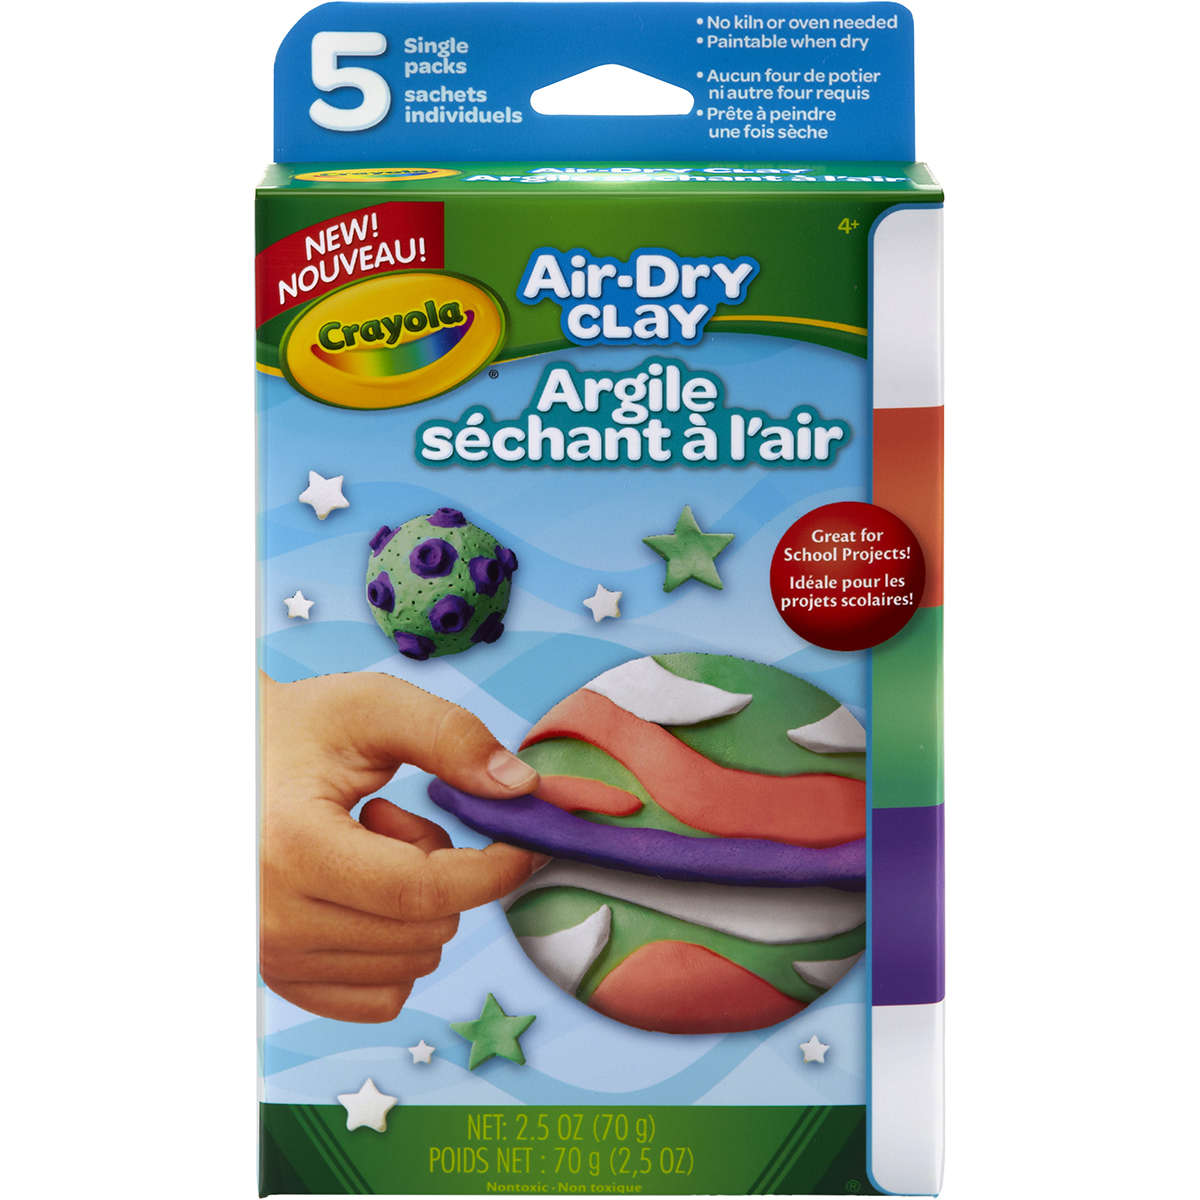 Crayola Air-Dry Clay in Bright Colors, No Baking Required, 5 count